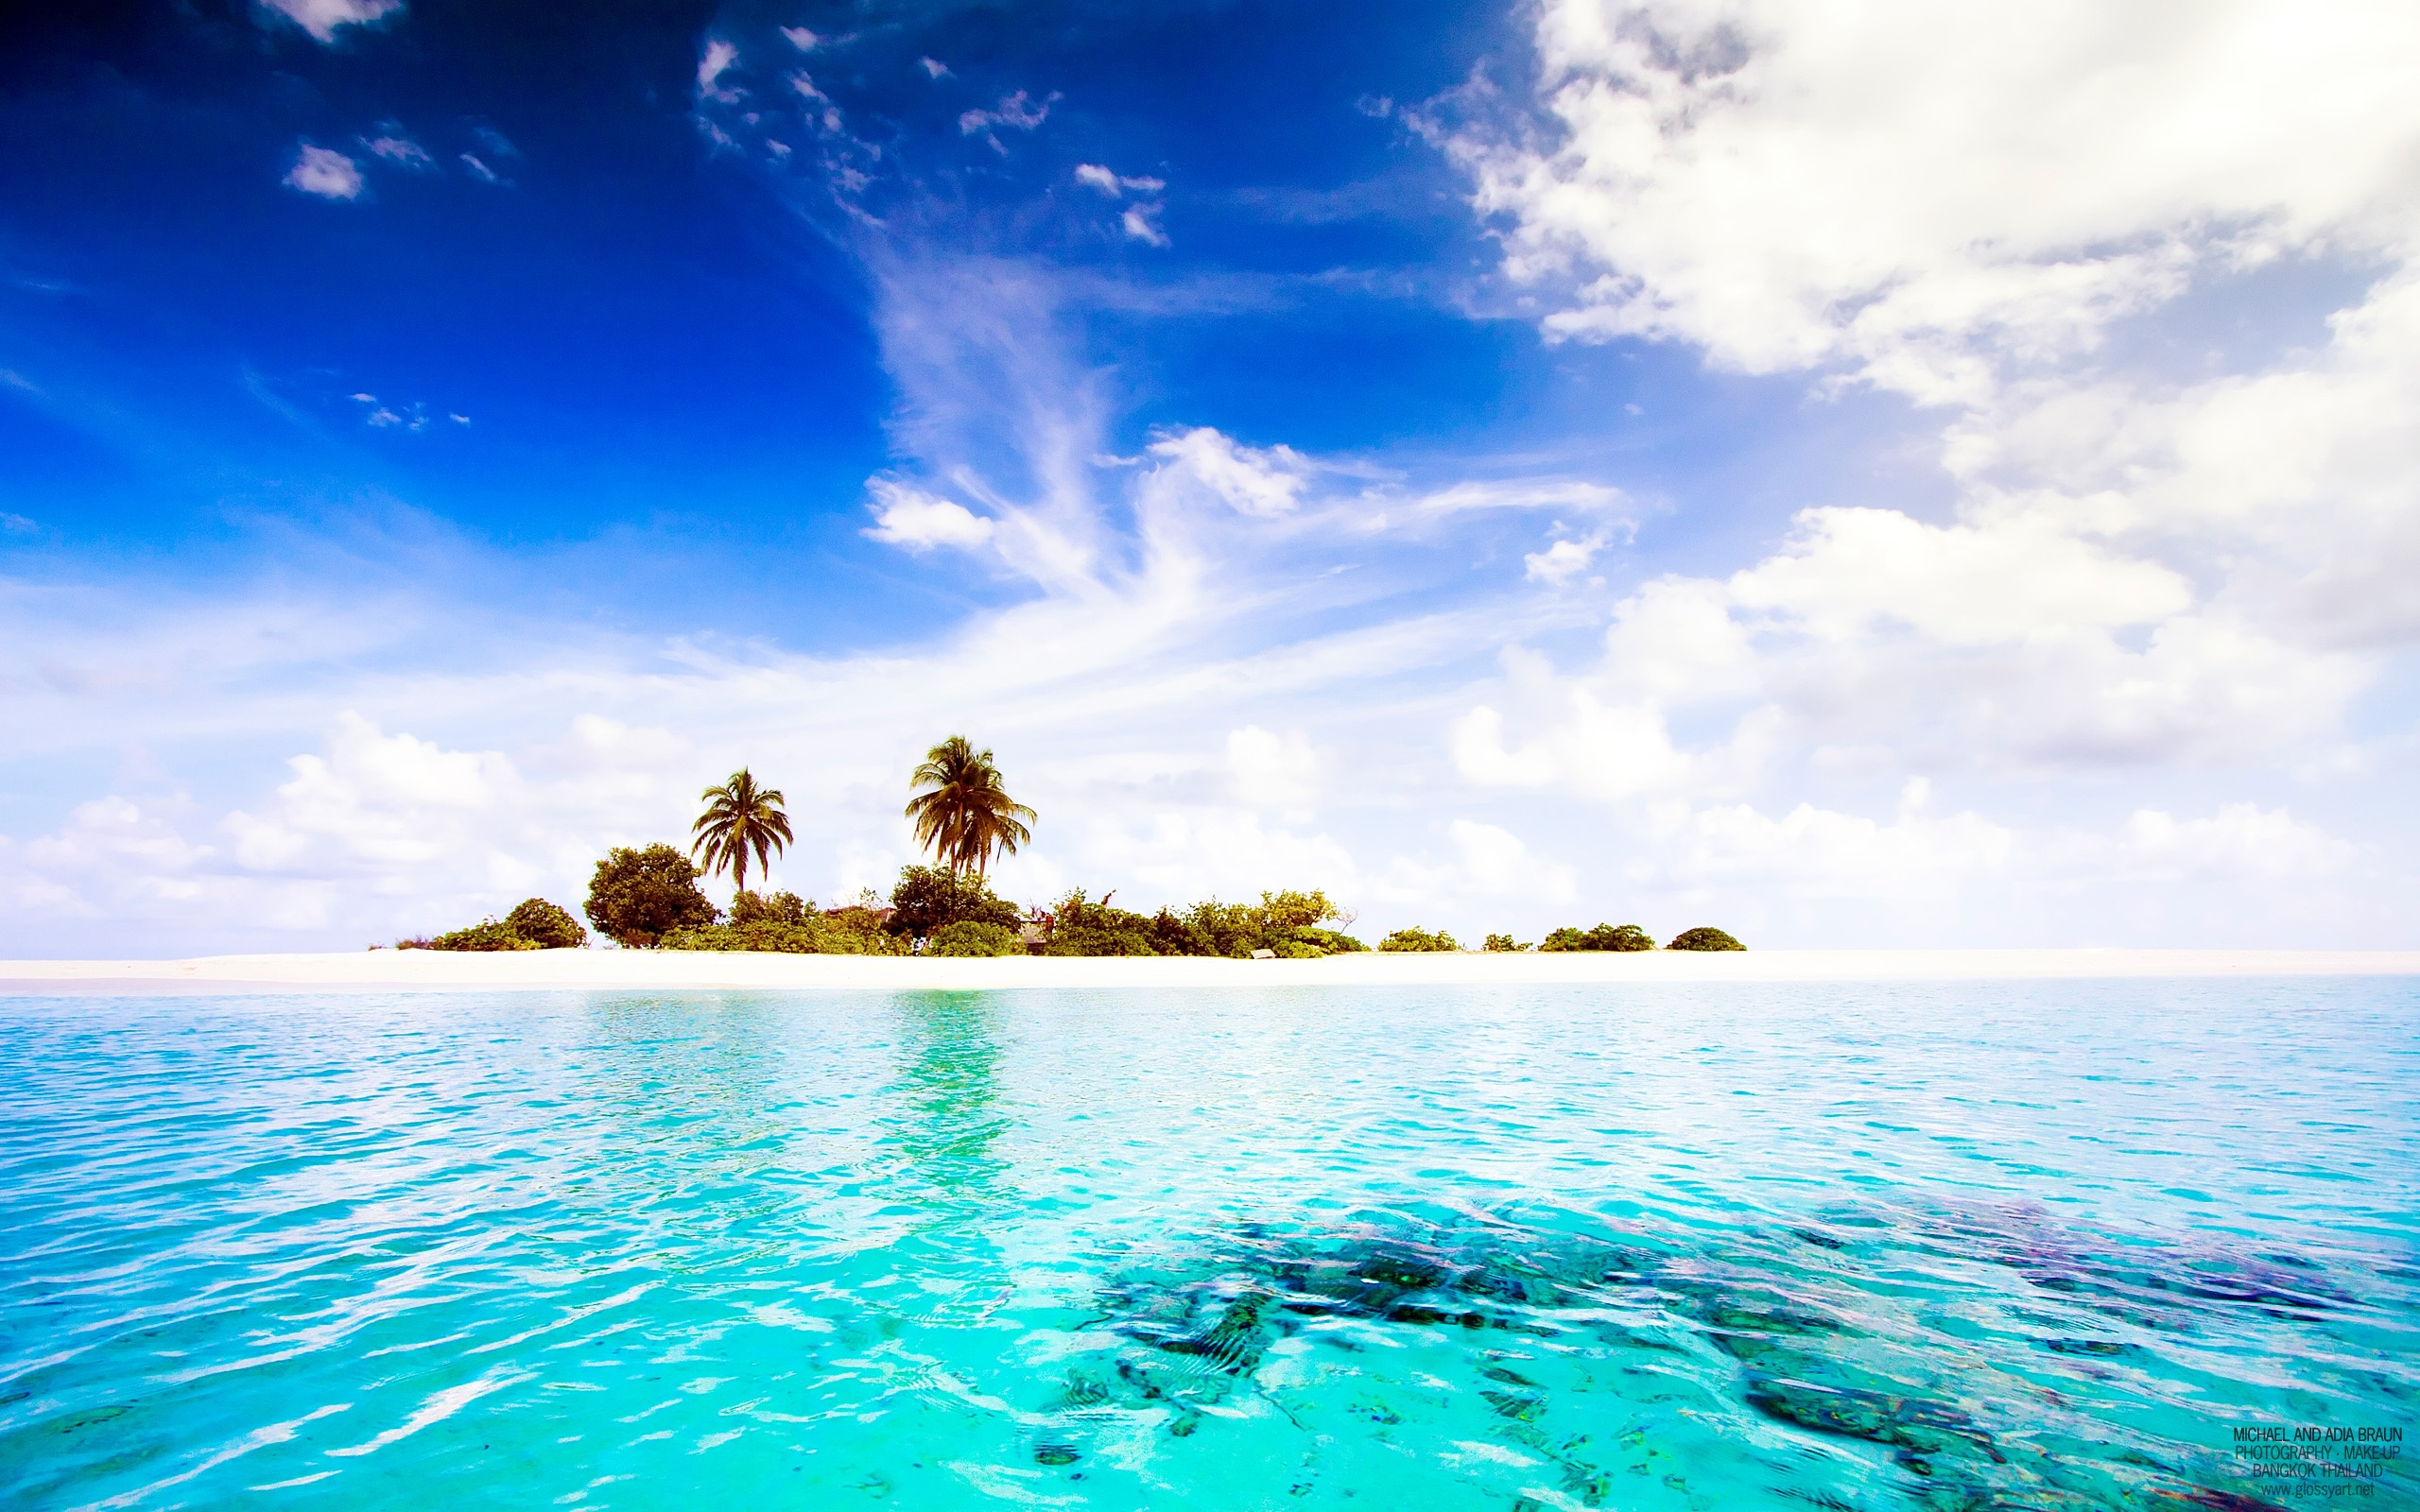 Maldives Diggiri Island Wallpapers In Jpg Format For Free Download